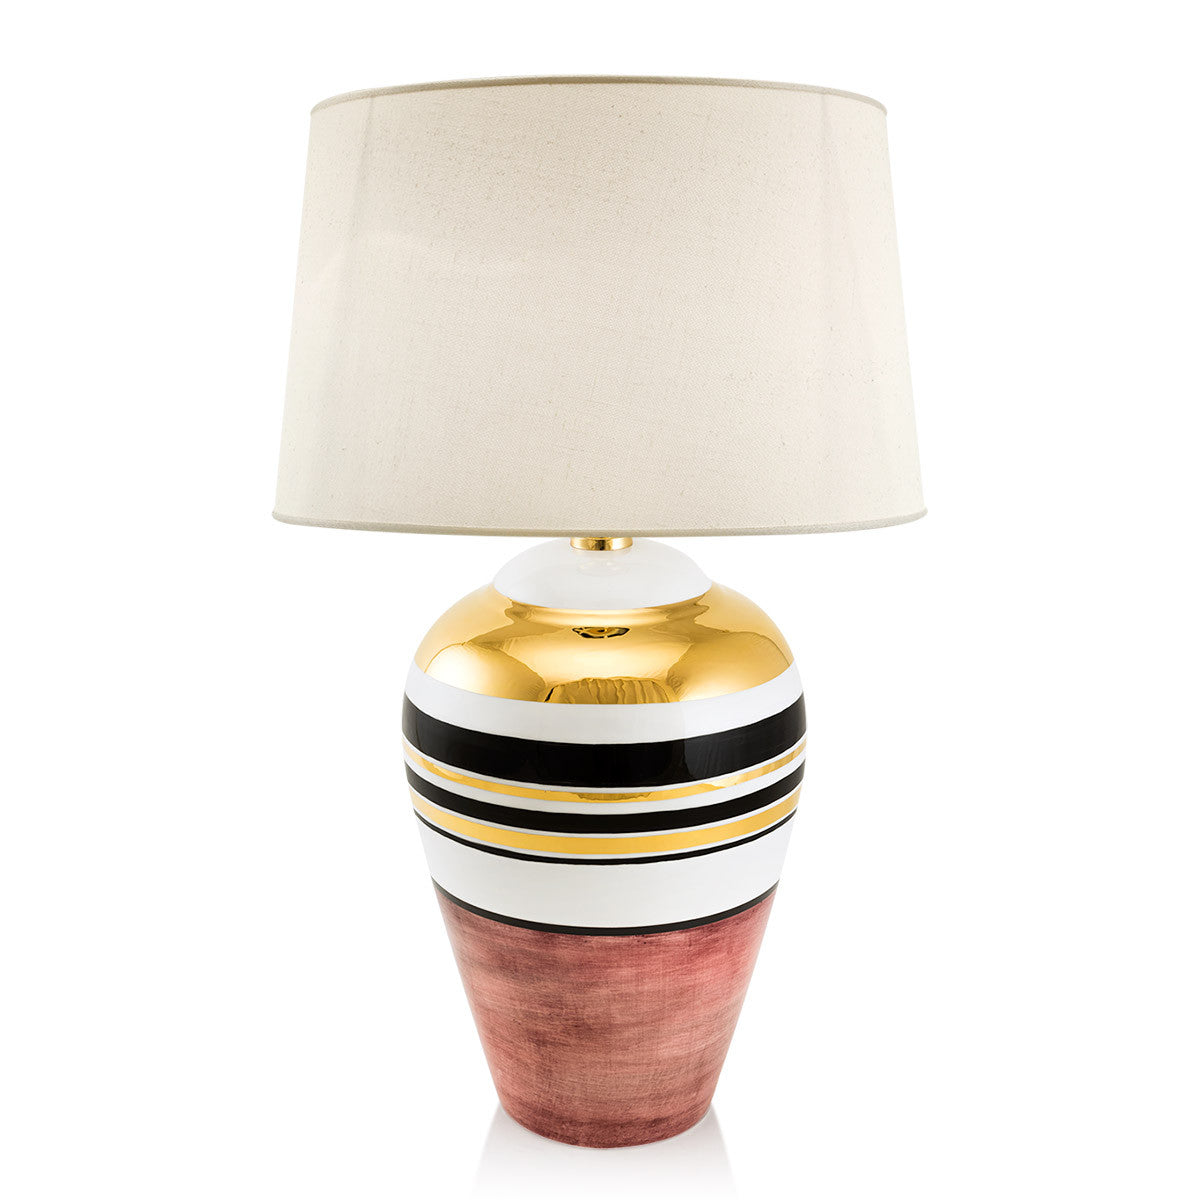 spin top ceramic table lamp | 24kt gold | glamour lighting